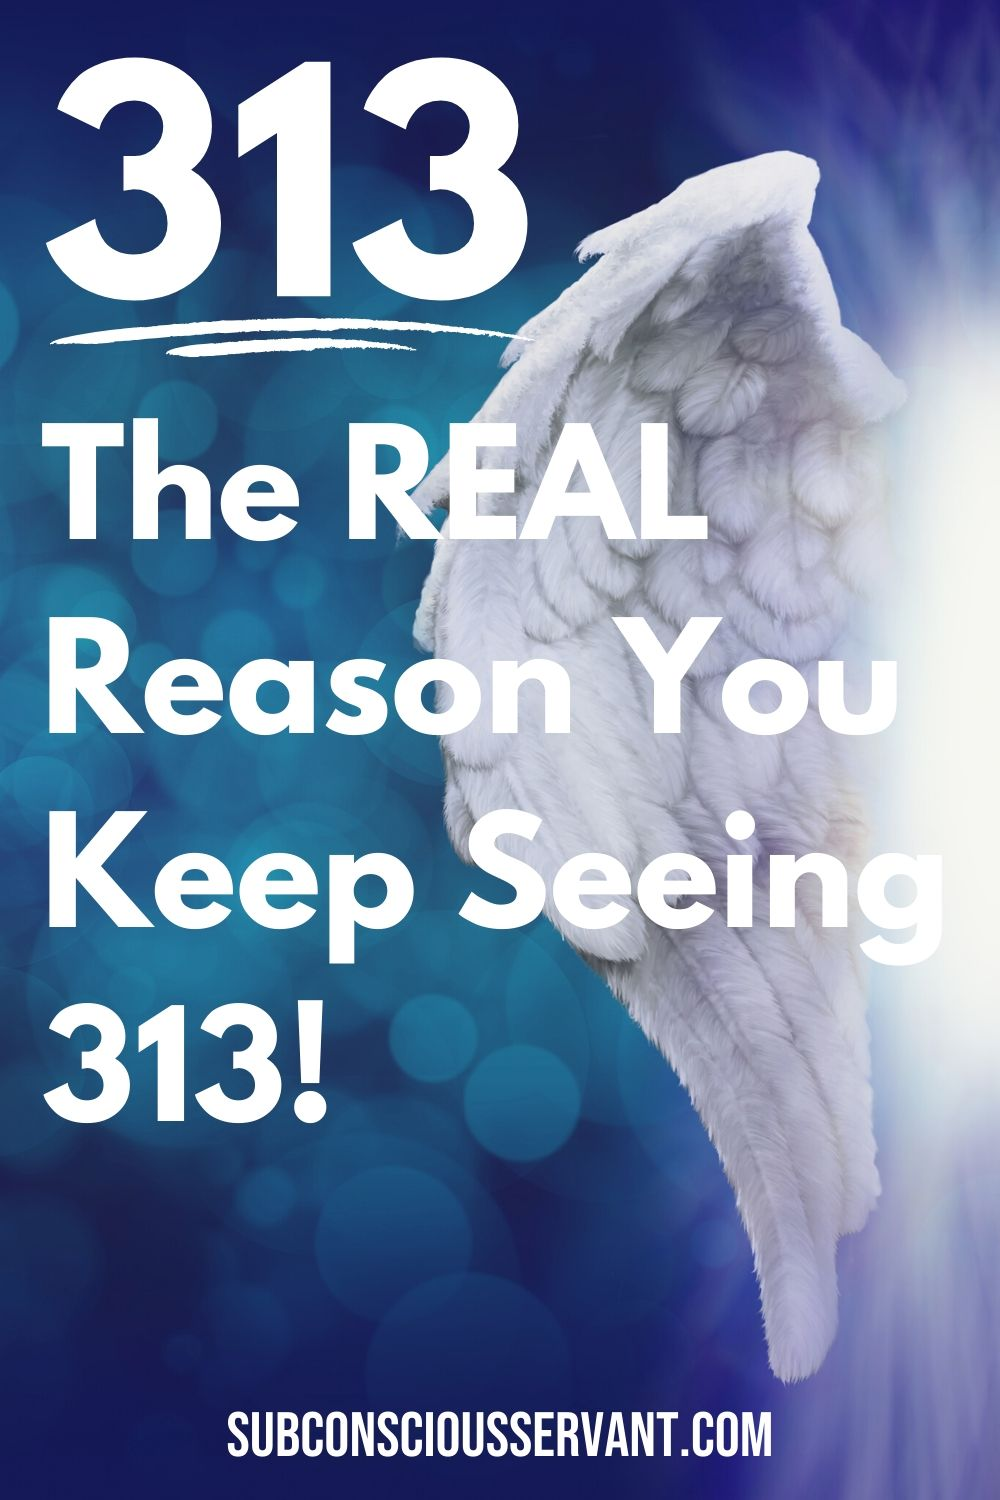 Numerology Number 313 – The REAL Reason You Keep Seeing 313!